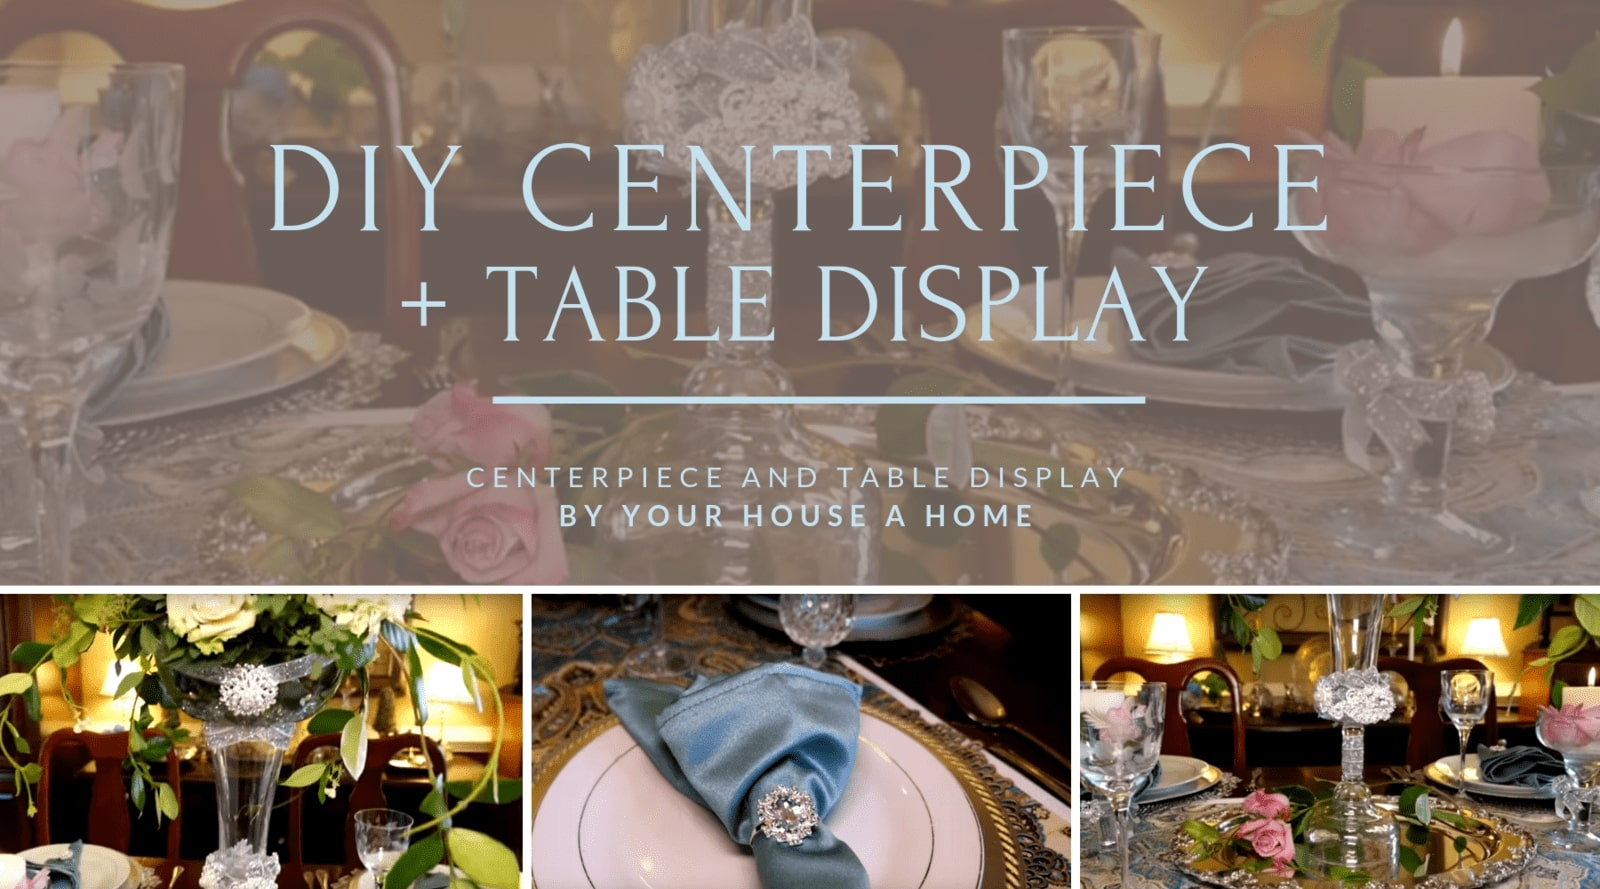 DIY Centerpiece + Table Display by Your House A Home